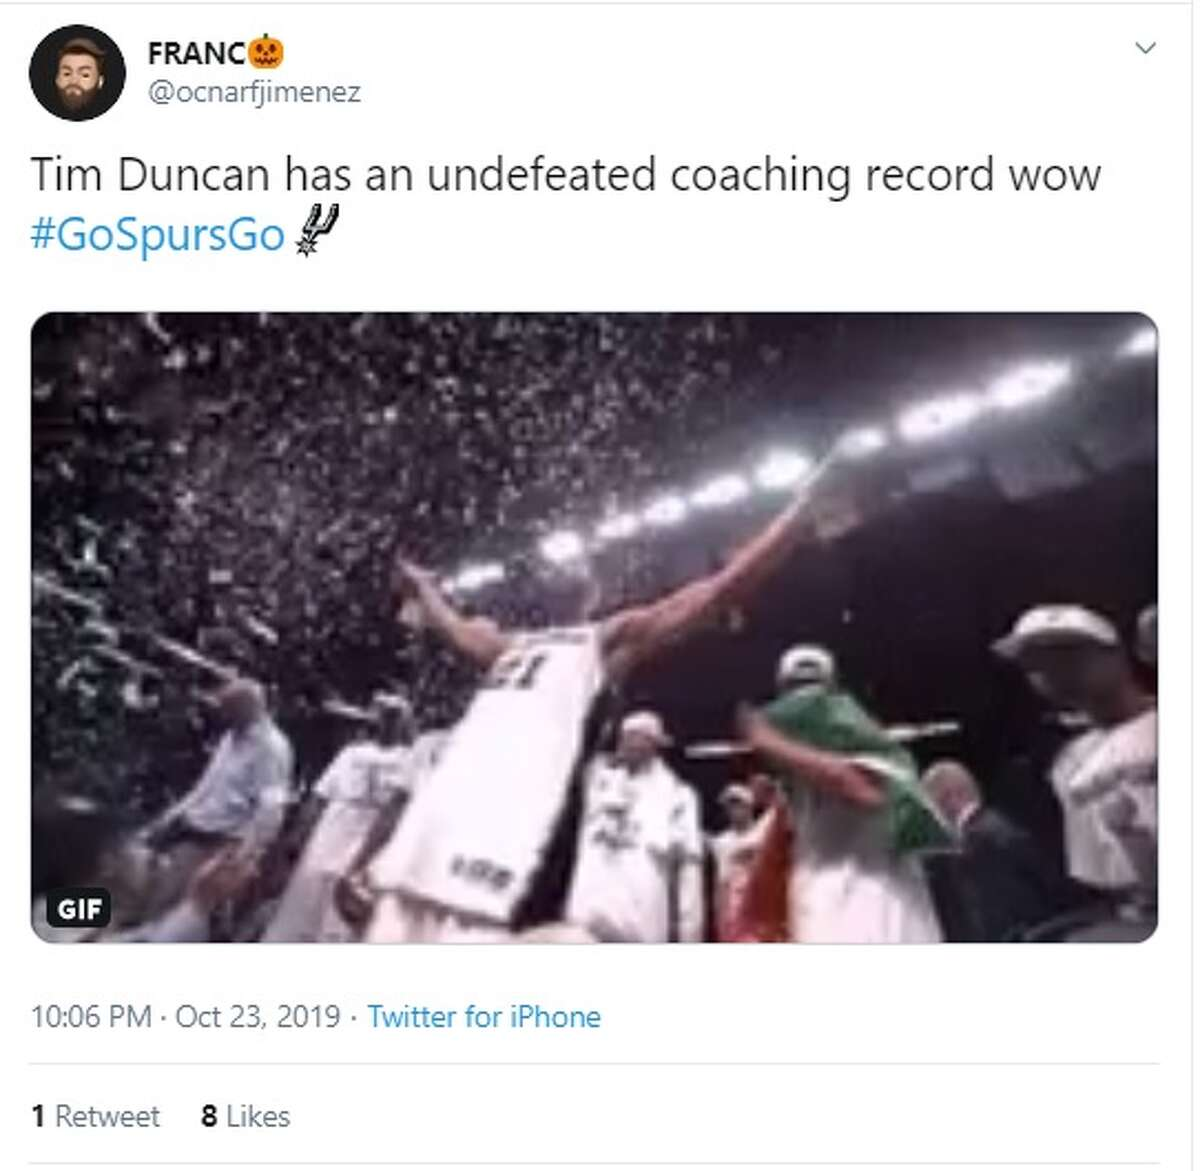 San Antonio Spurs fan share their excitement on Twitter after the Spurs beat the New York Knicks 120-111.